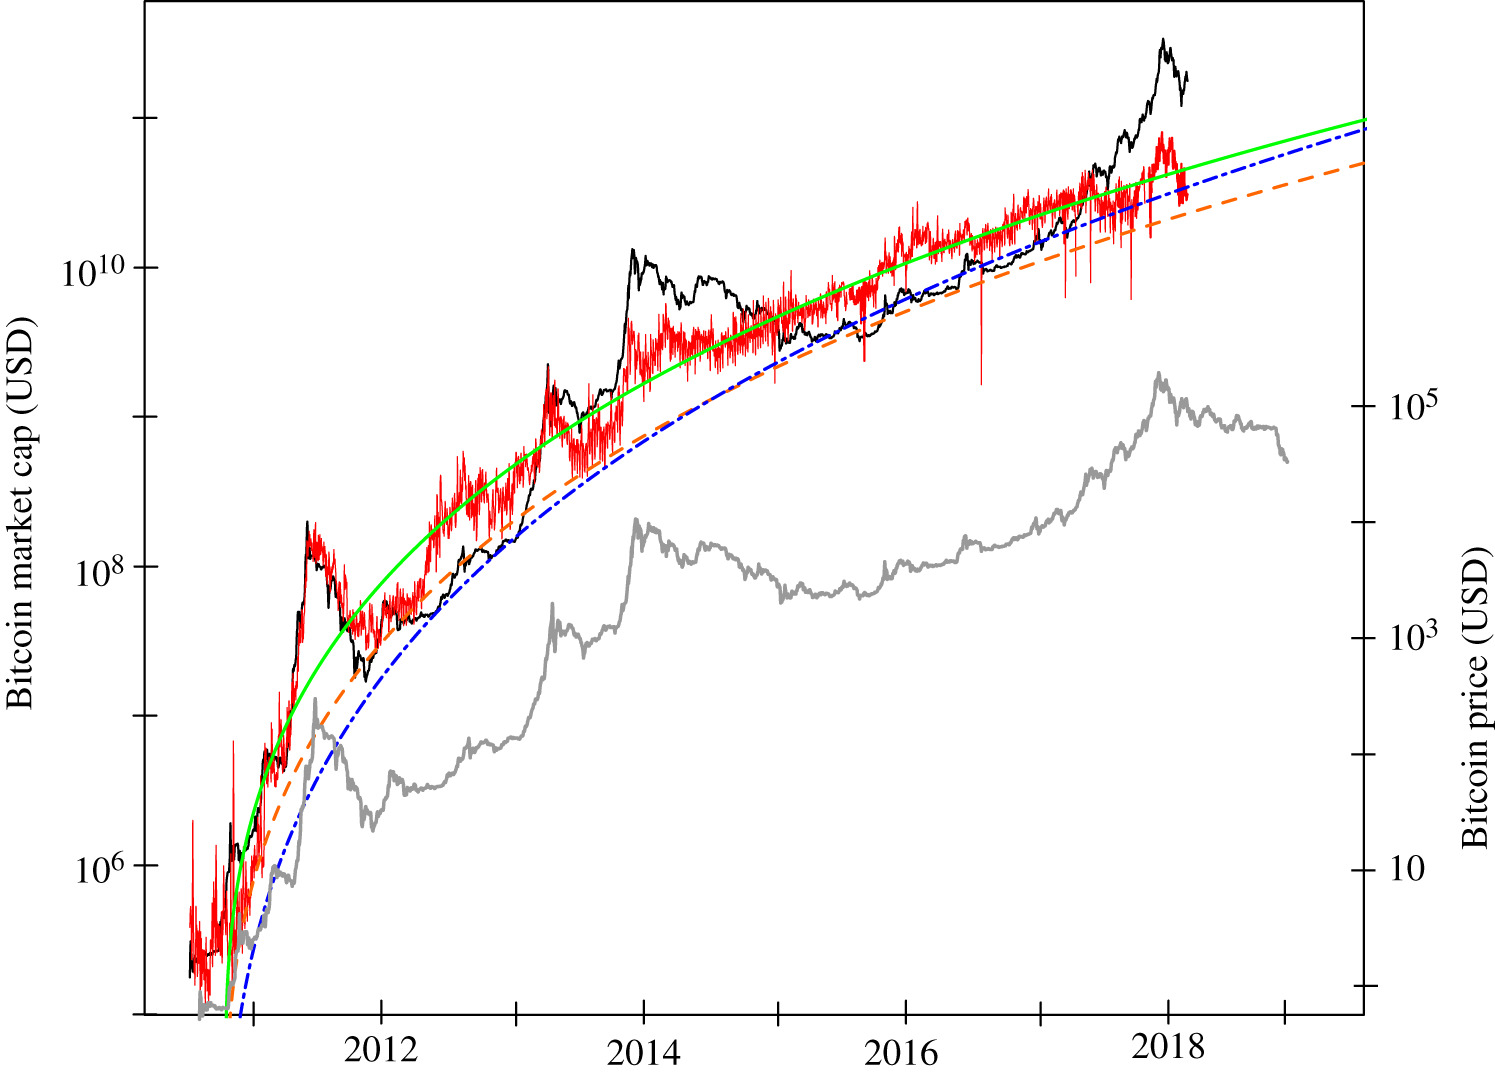 Are Bitcoin bubbles predictable? Combining a generalized